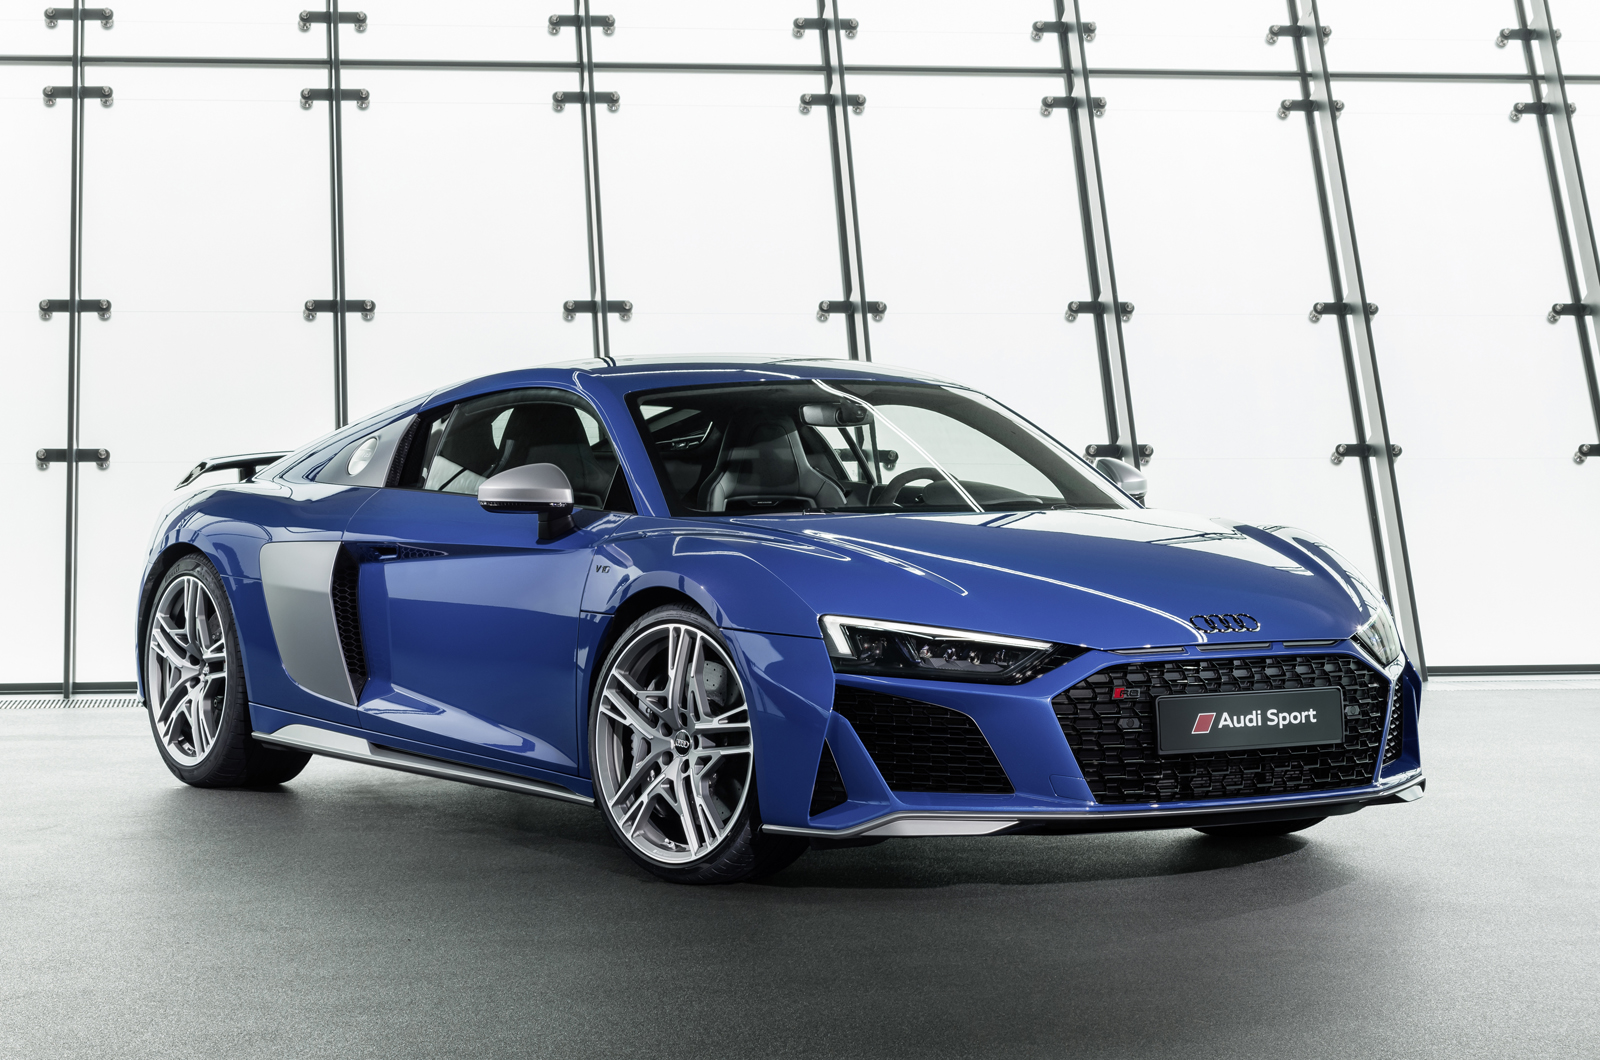 2019 Audi R8 revealed – price, specs and release date | What Car?